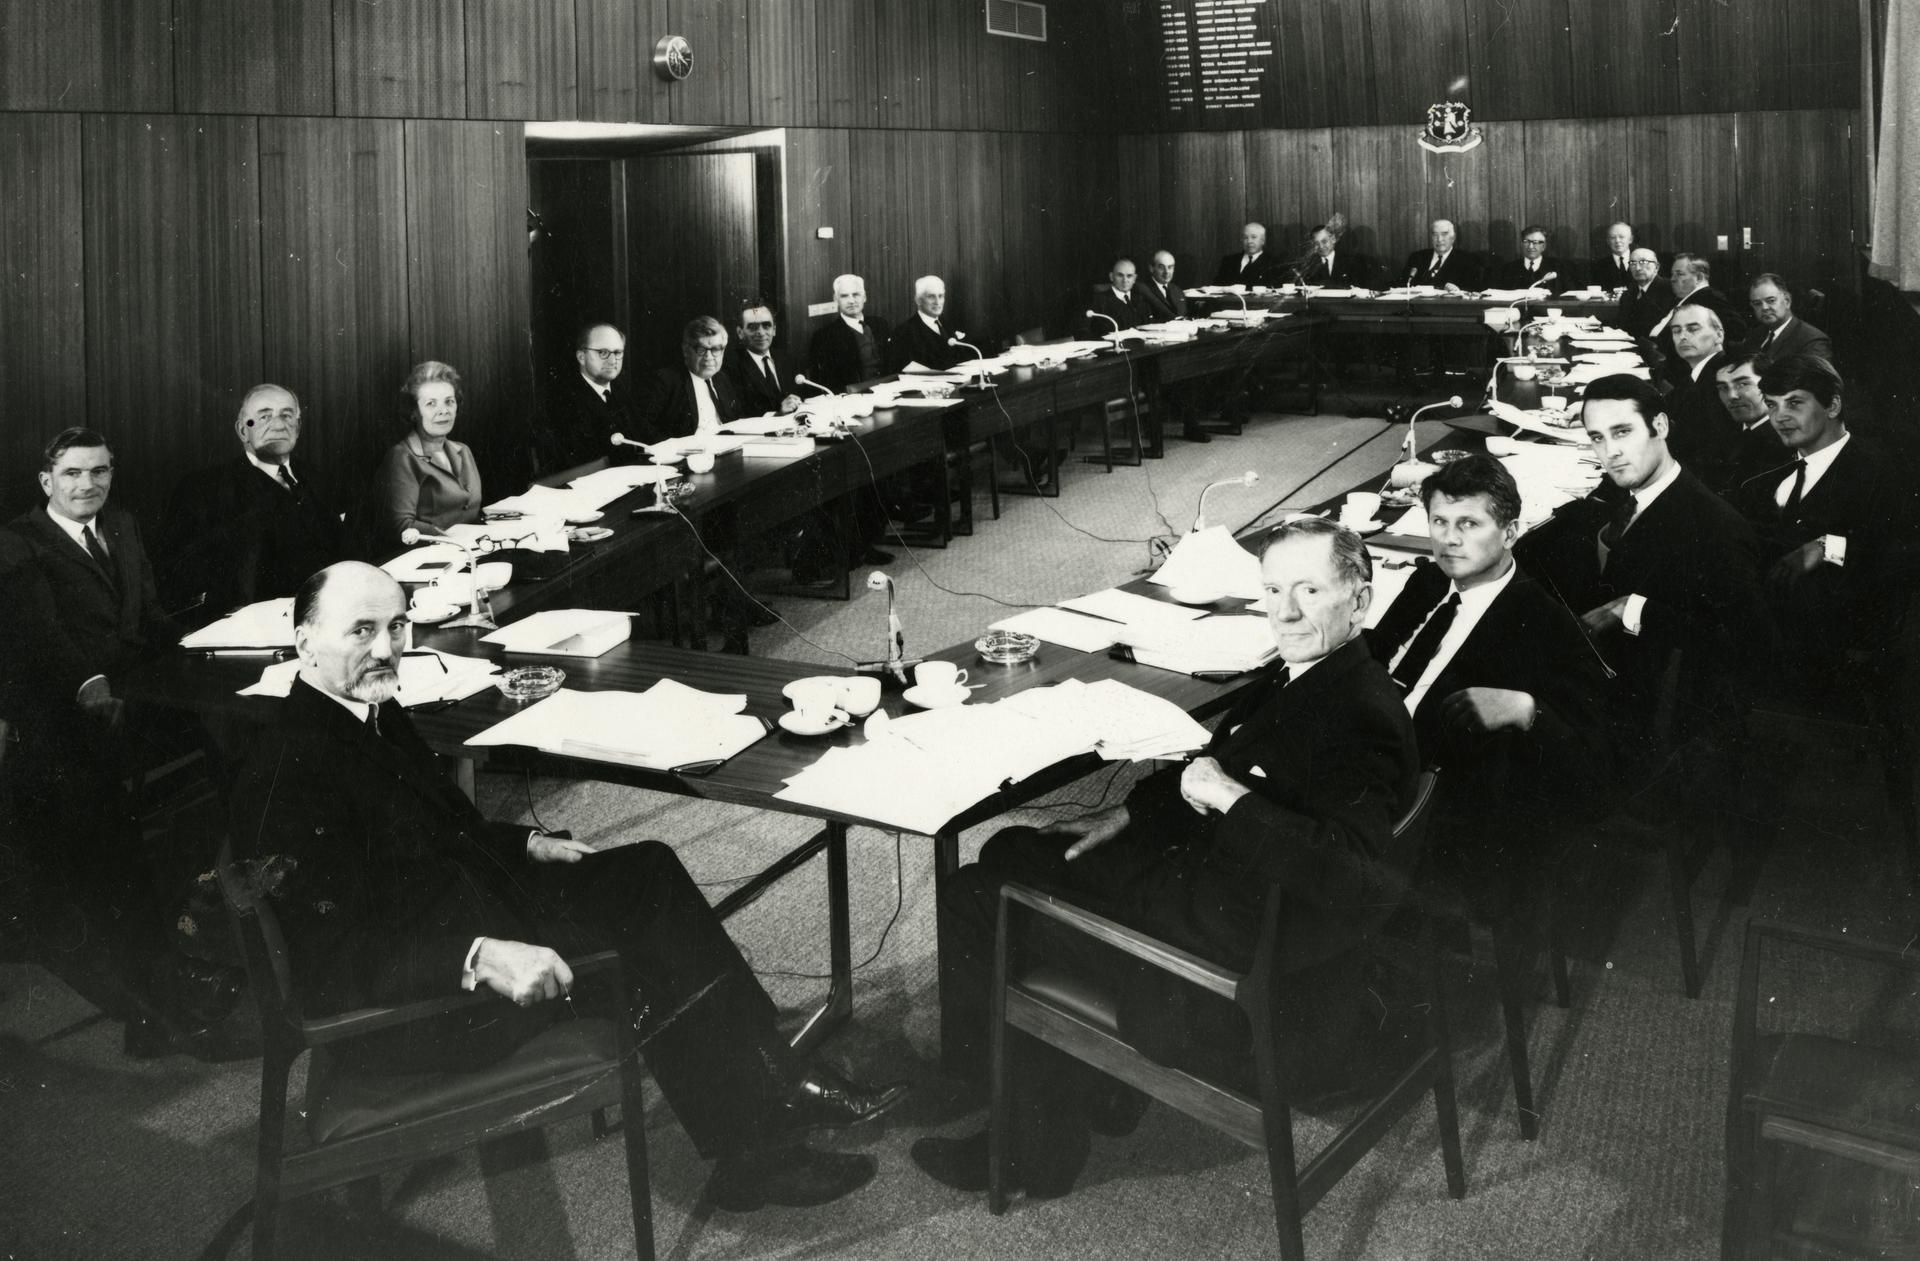 Council Meeting c1969